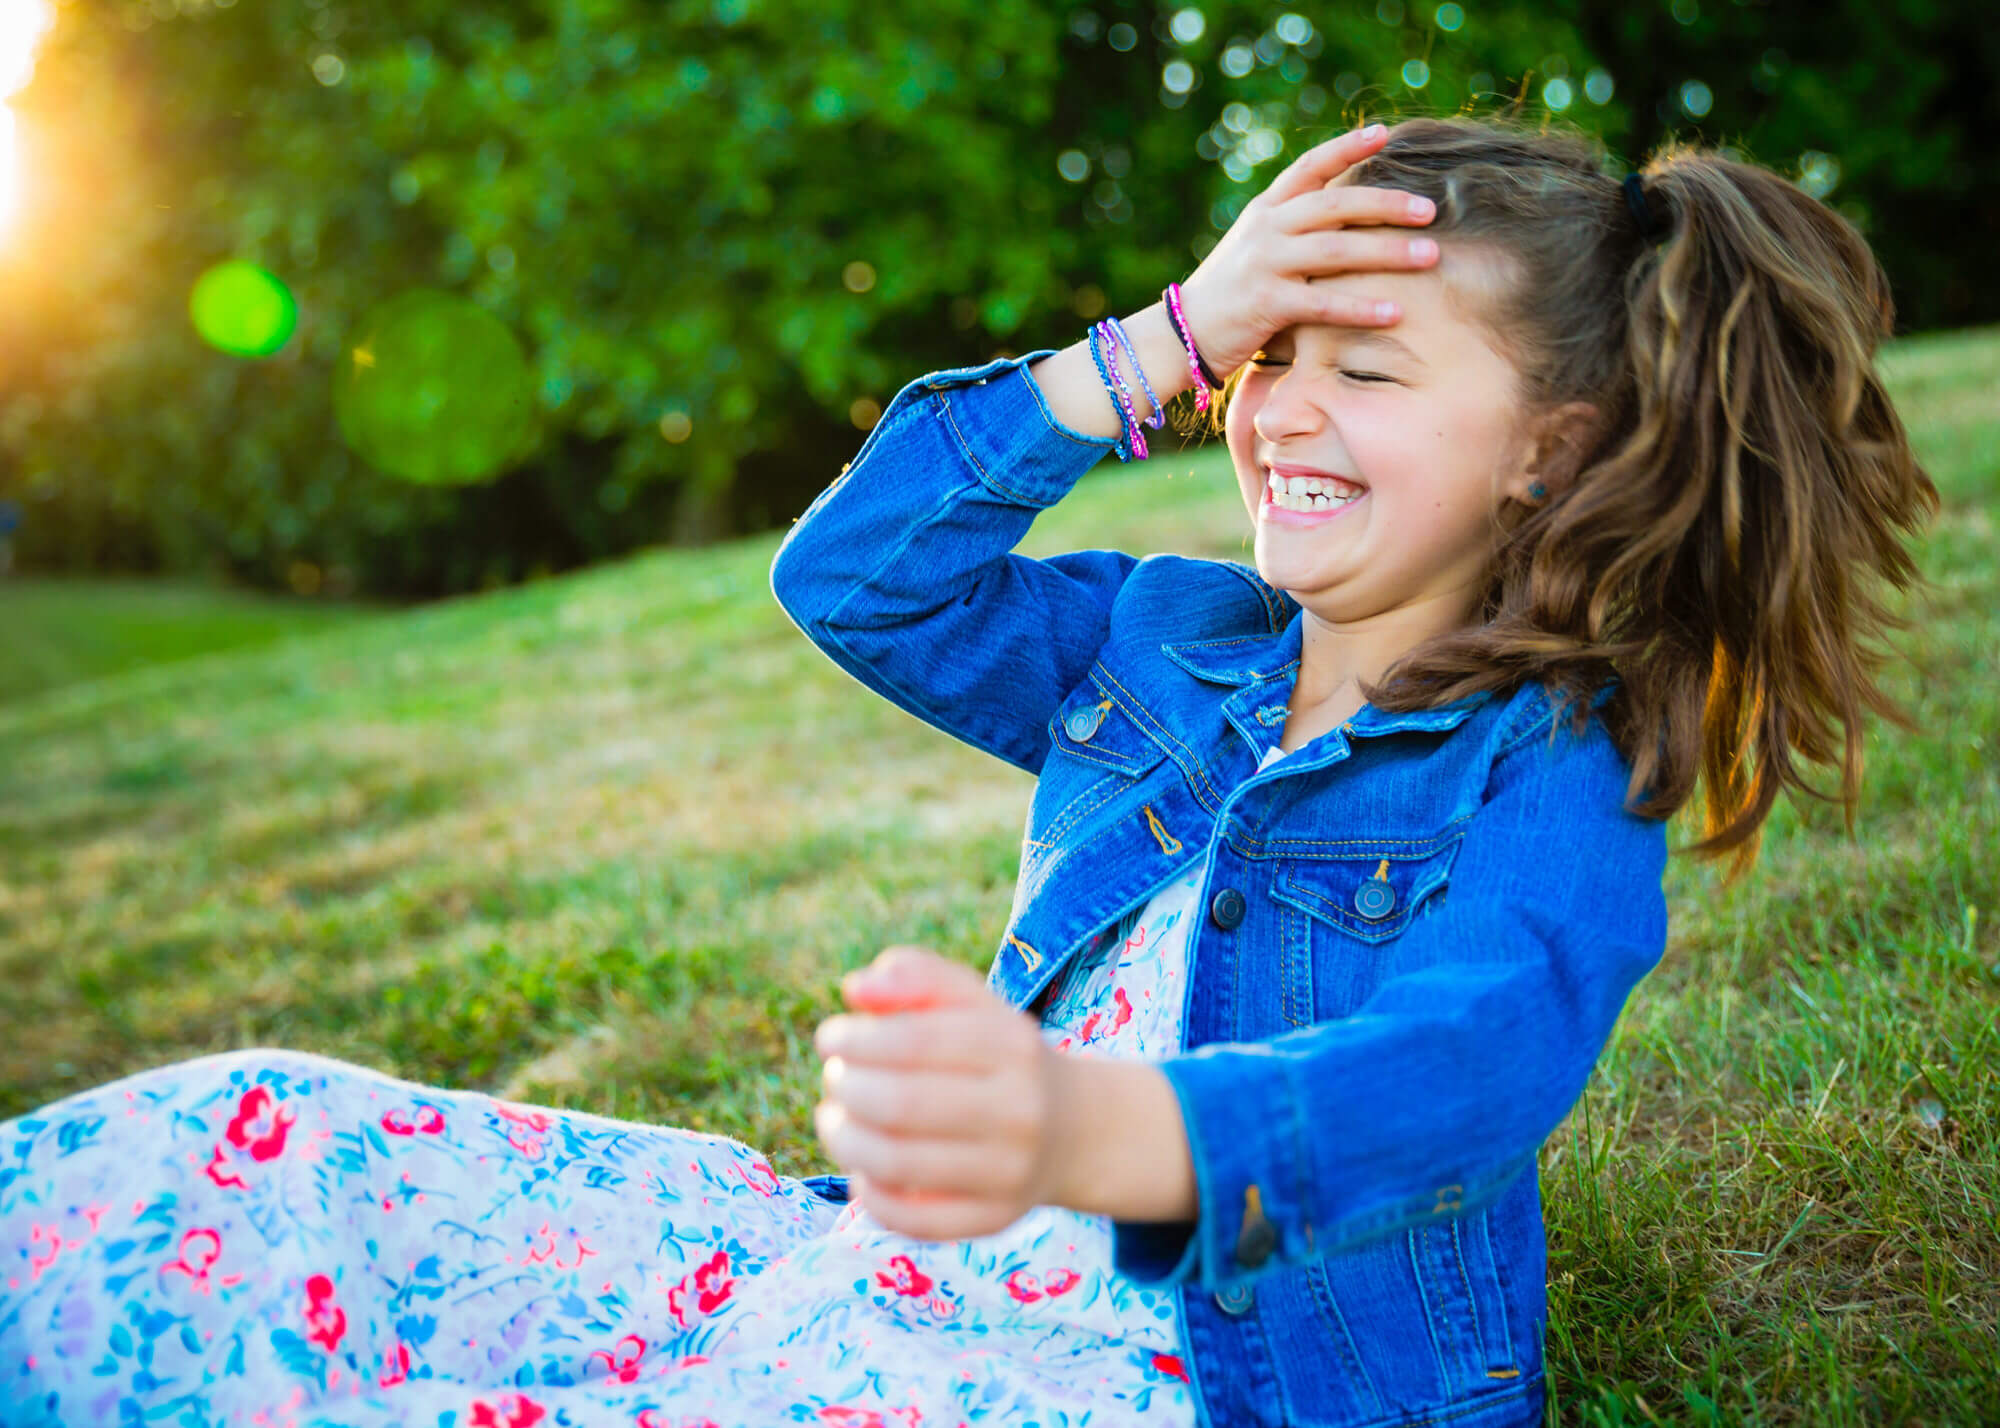 Child laughing in grass